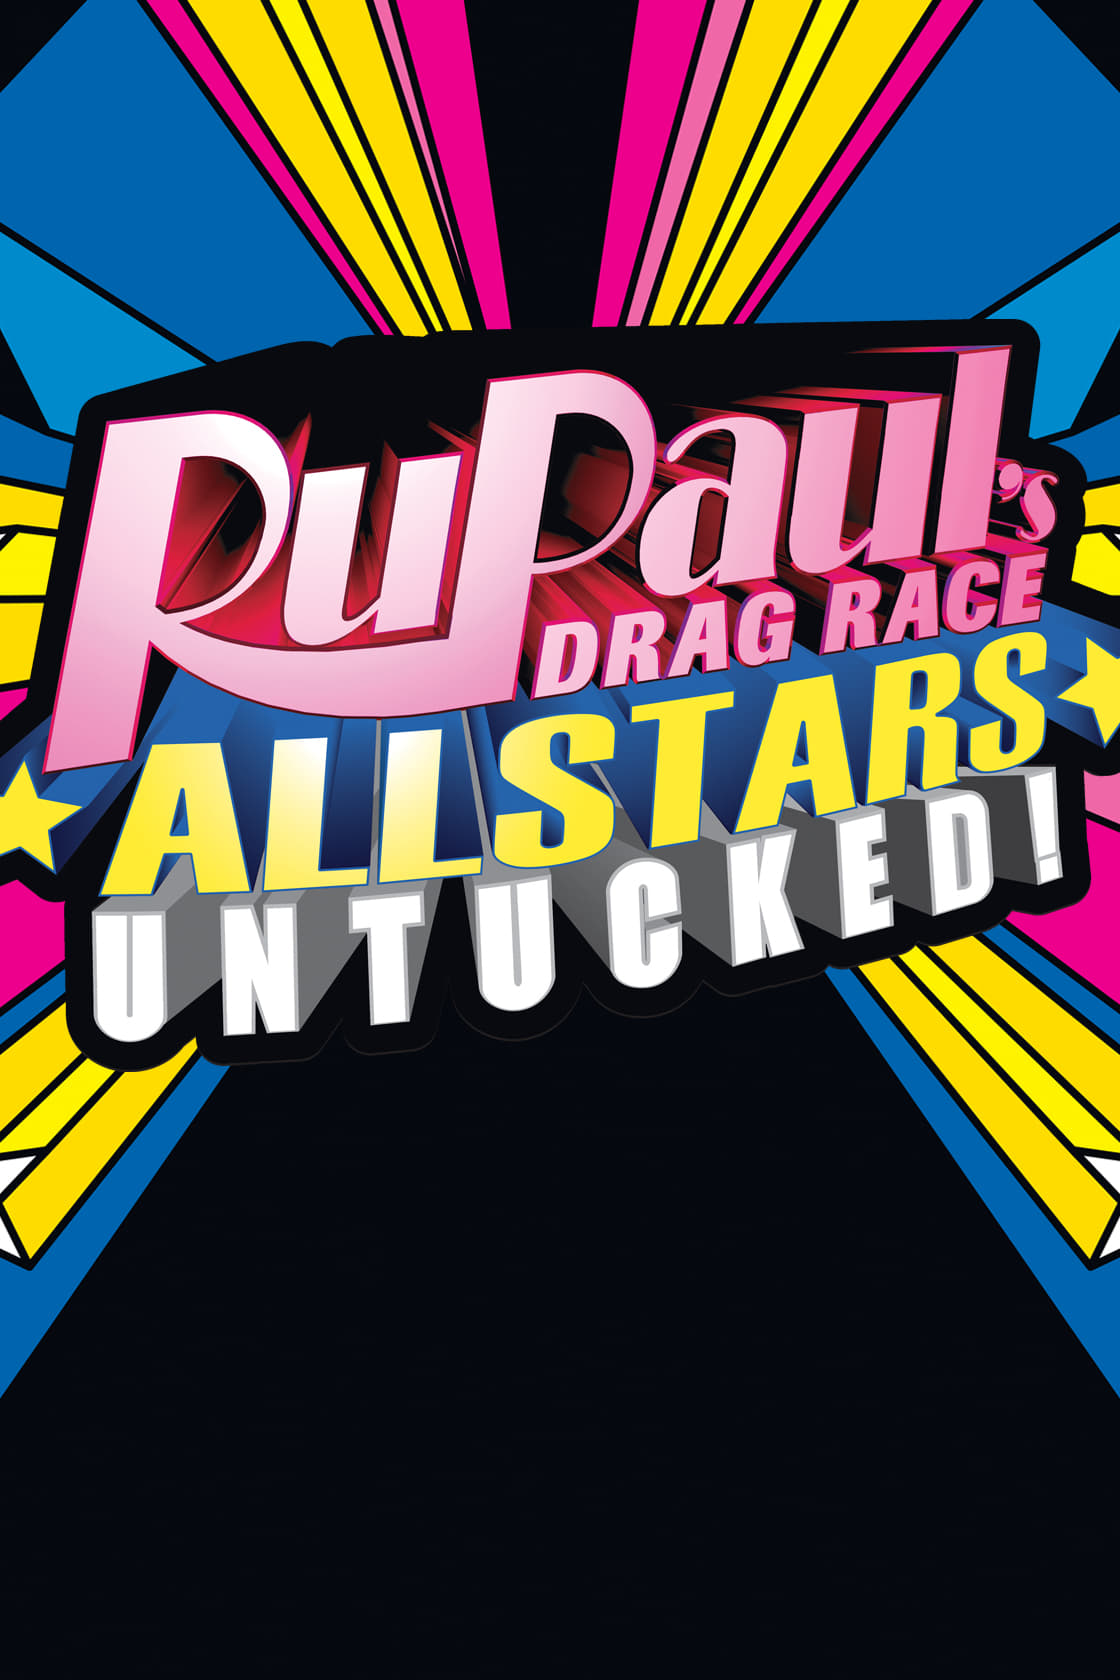 RuPaul's Drag Race All Stars: Untucked! (2012)